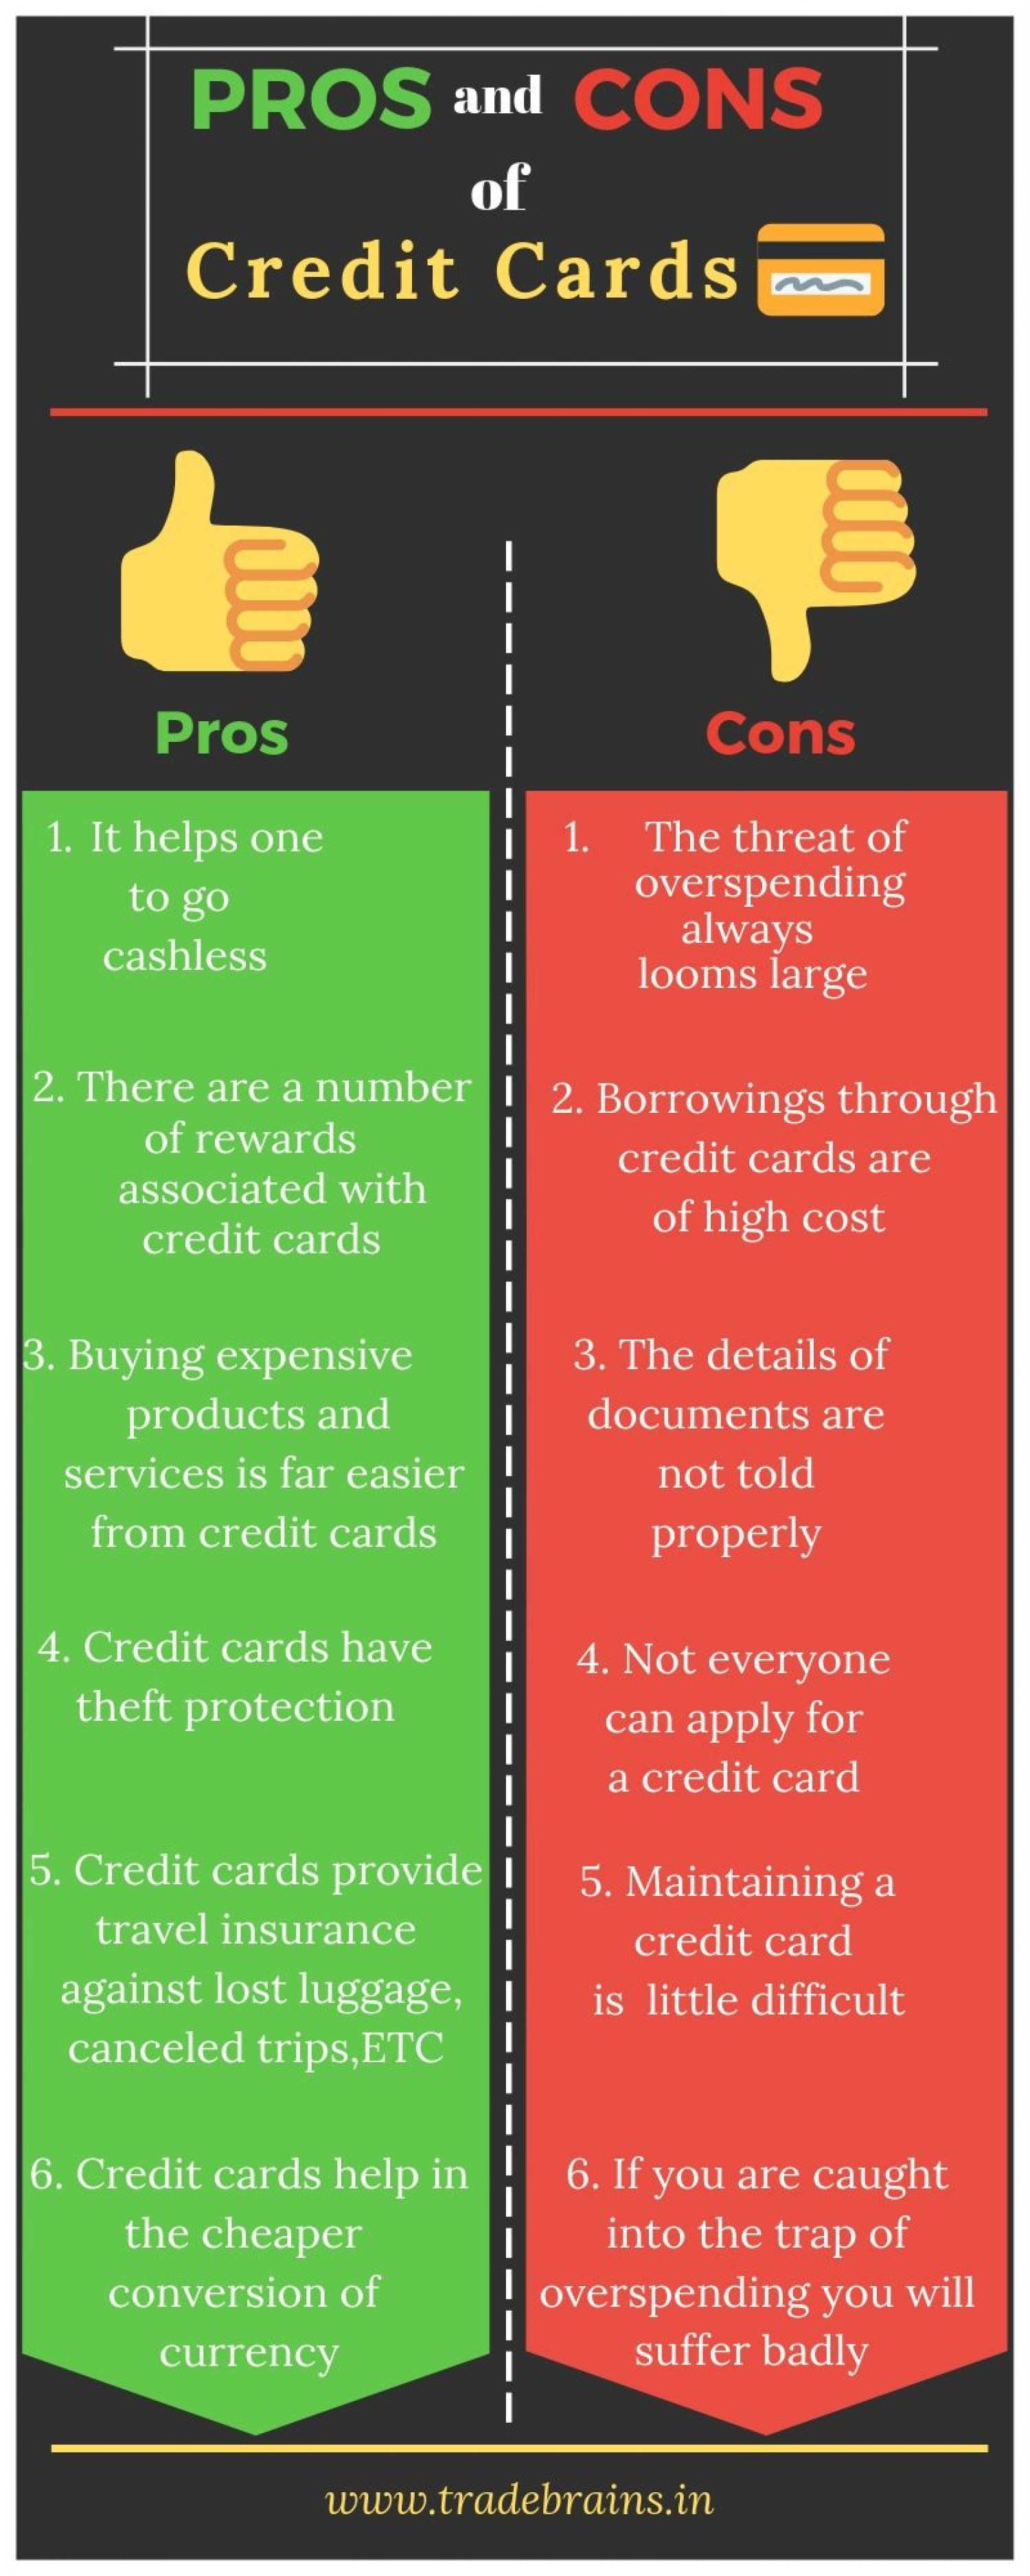 The Pros and Cons of Credit Cards in India Infographic